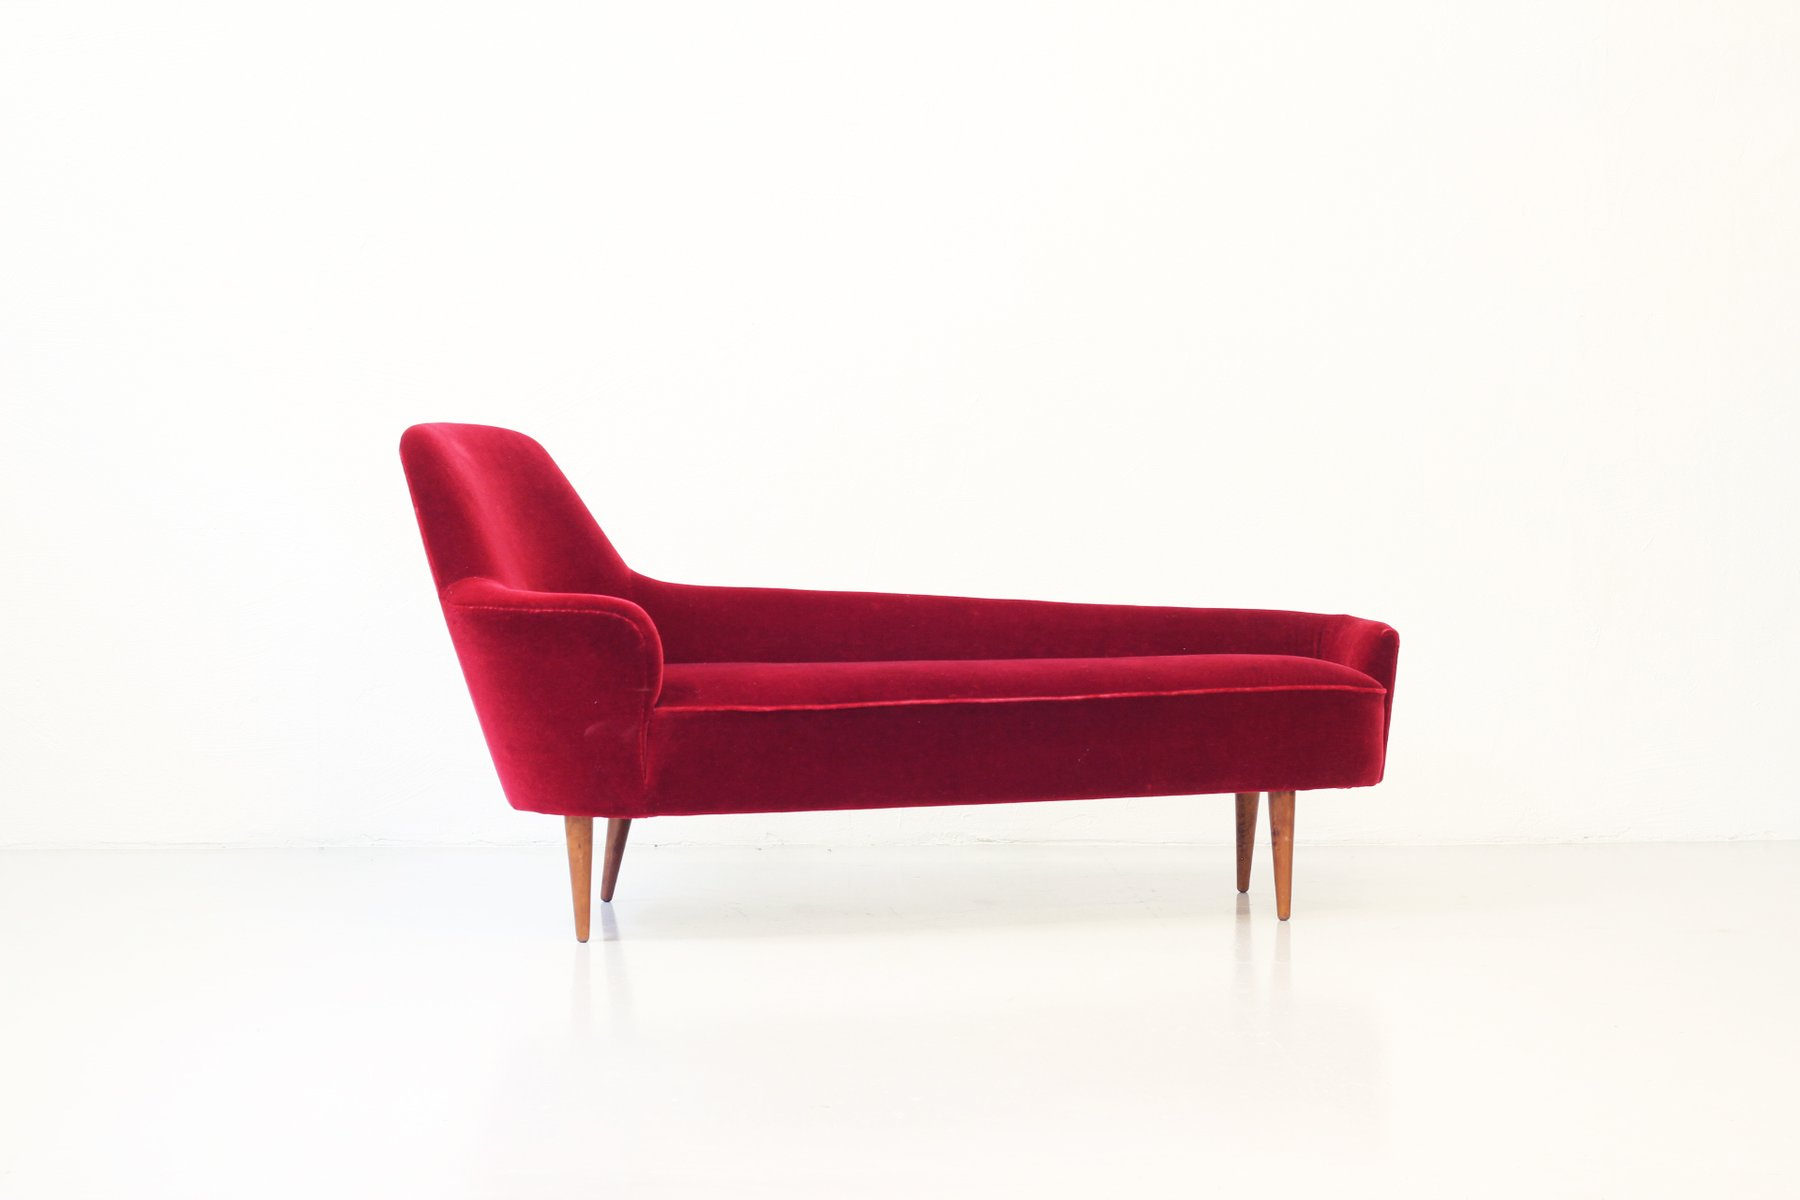 Singoalla chaise lounge by gillis lundgren for ikea 1961 for Chaise longue jardin ikea